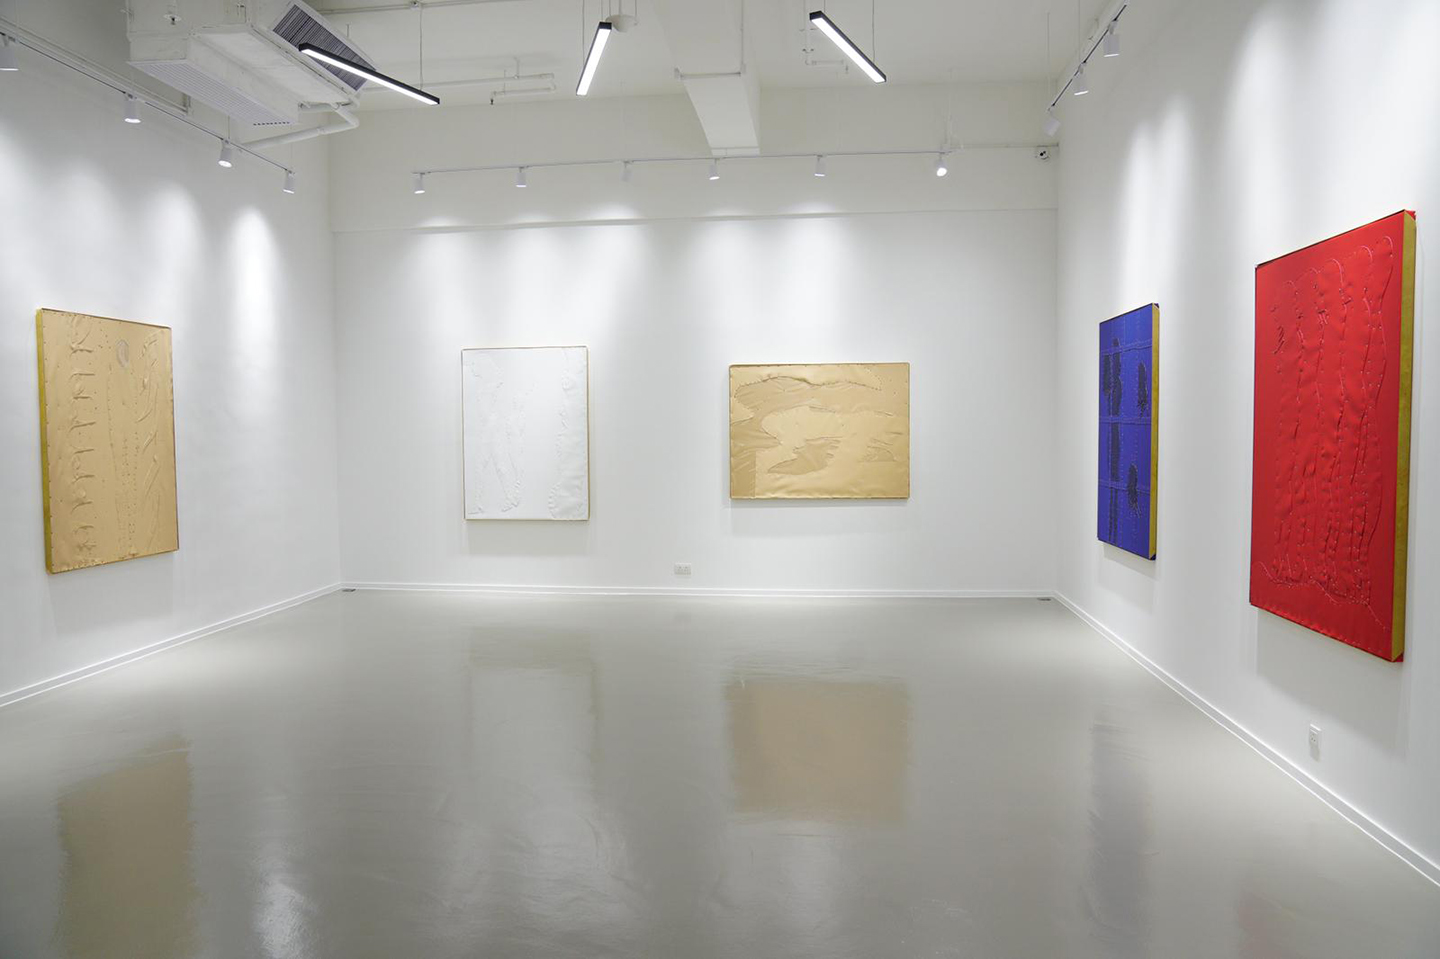 D Art Exhibition Hong Kong : Dario guccio u cdry clean calendaru d at mine project gallery hong